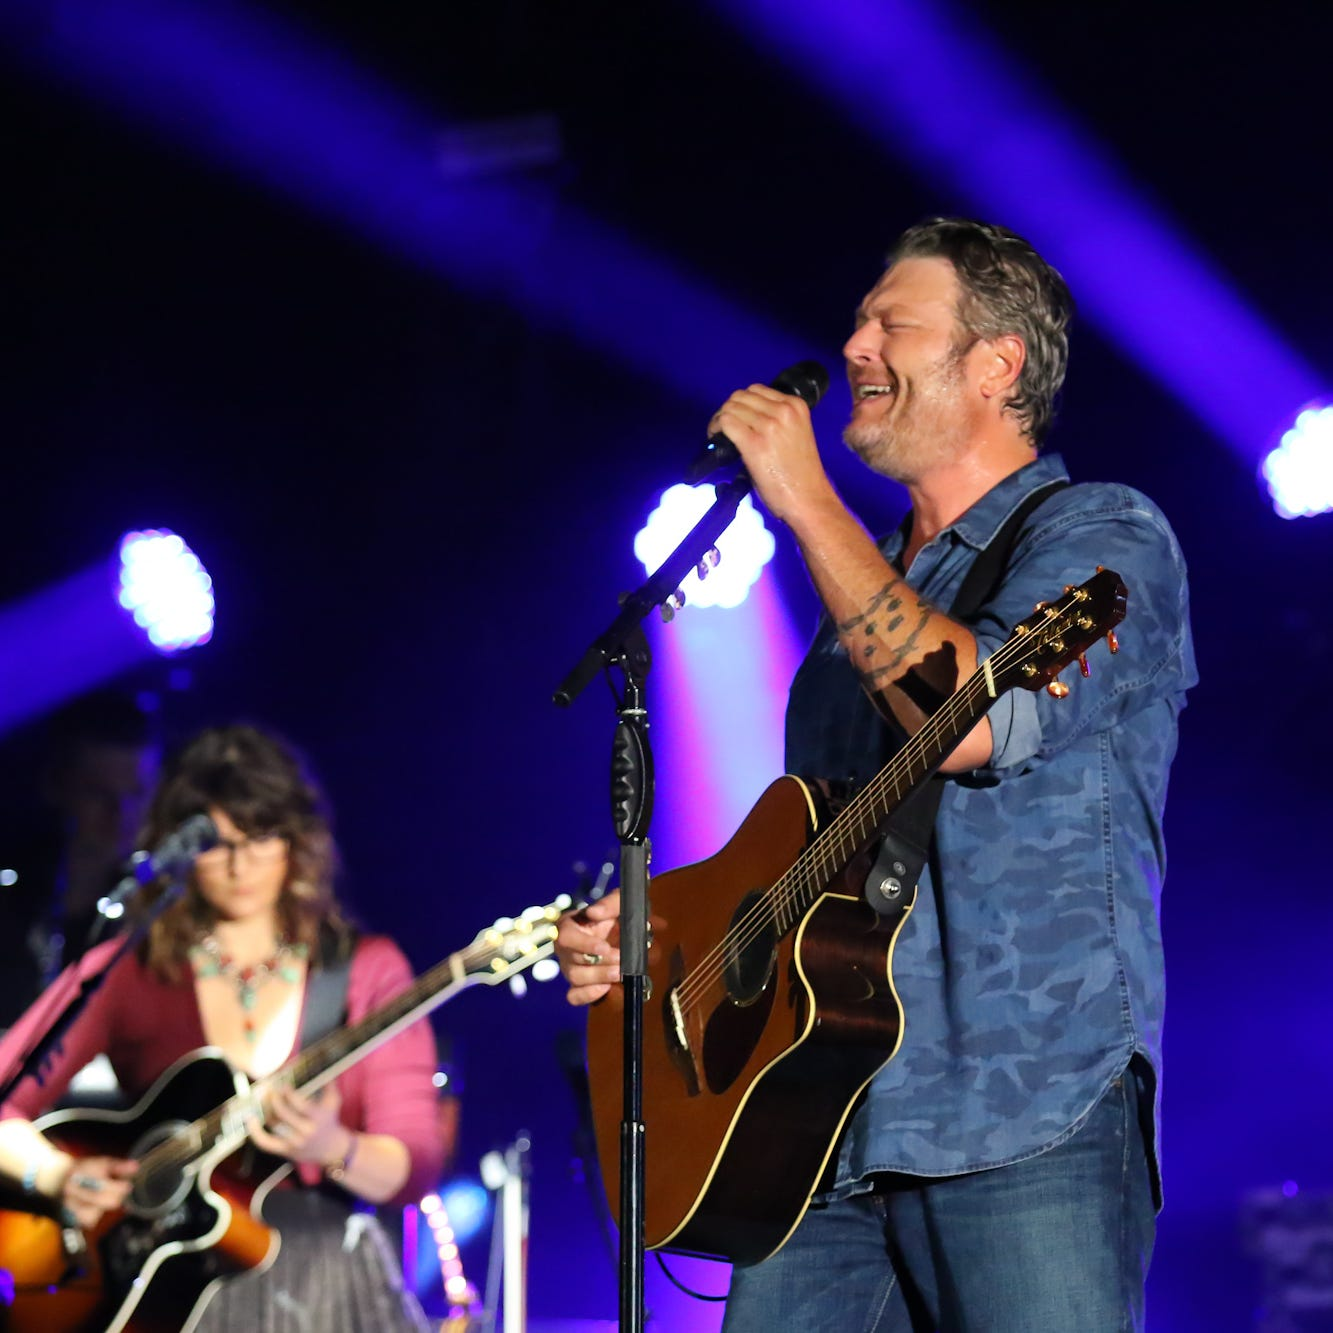 Blake Shelton thrills audience with 2-hour show at Dick's Open